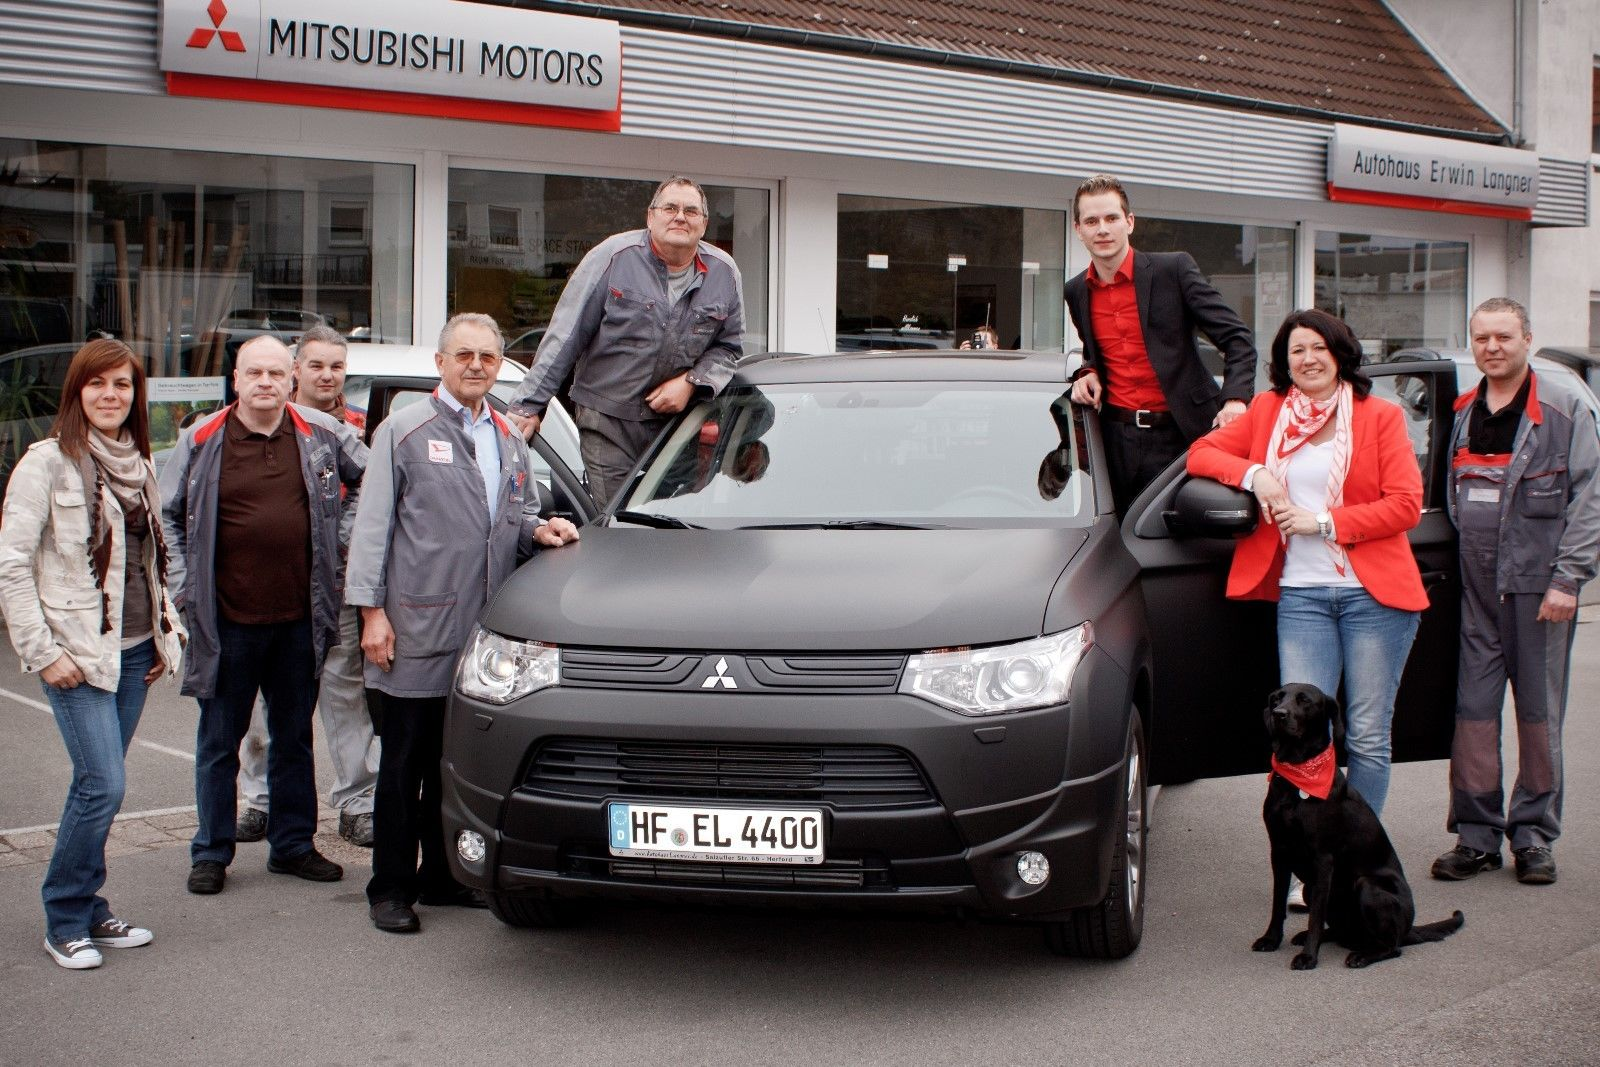 mitsubishi space star 1.2 diamant edition+ navi klima - deine